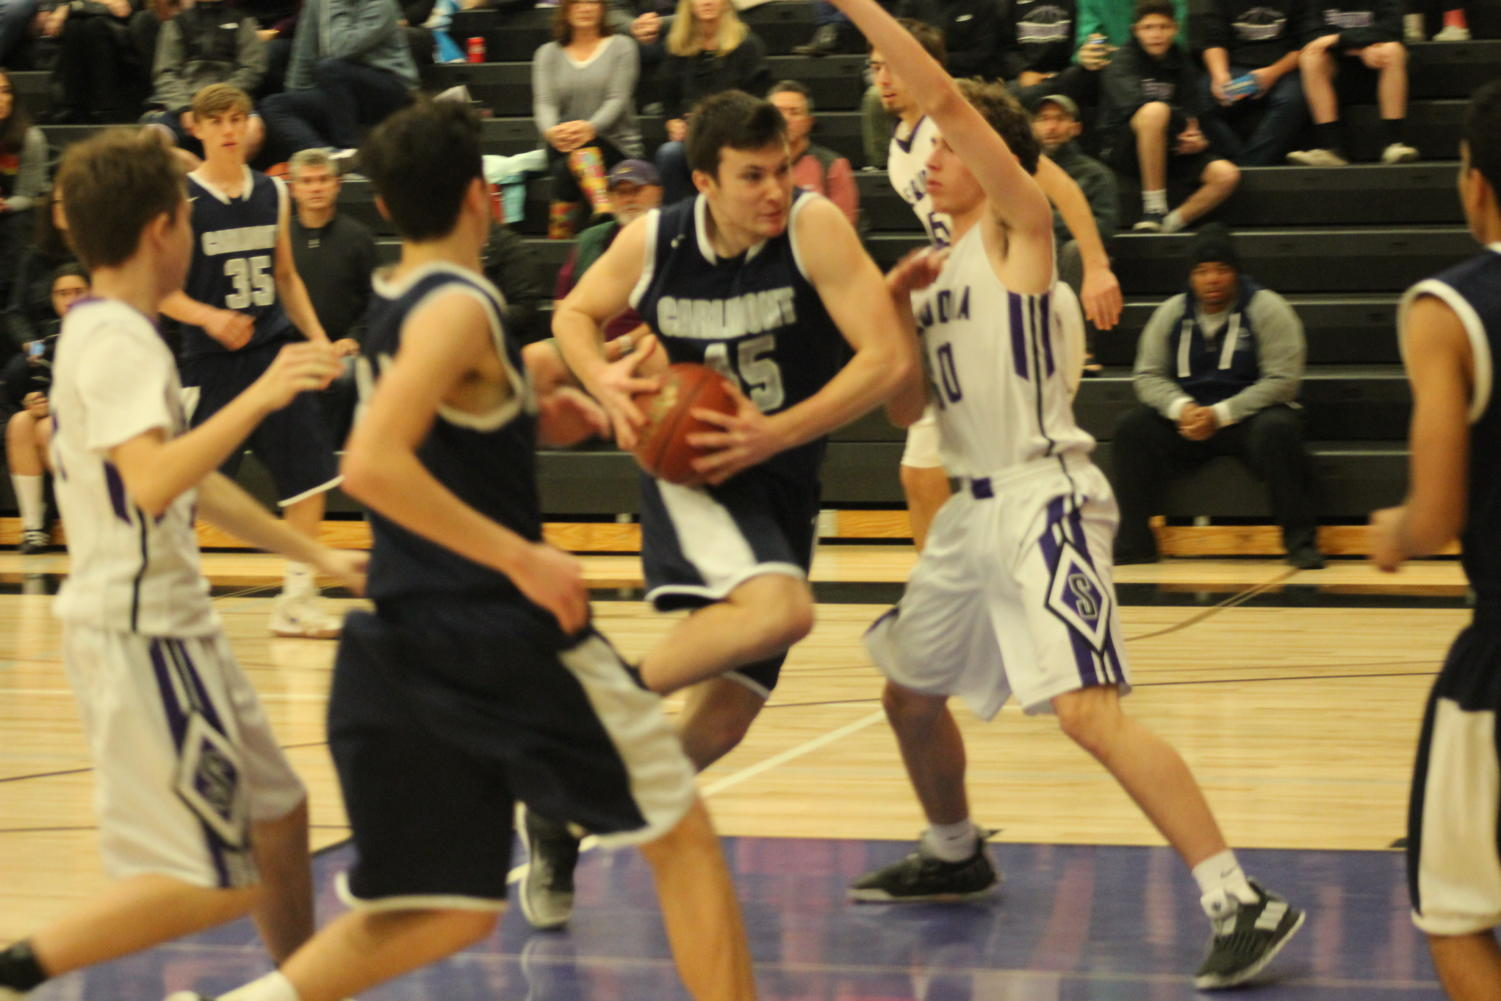 Sophomore center Will Hesselgren attempts a layup through Sequoia defenders.